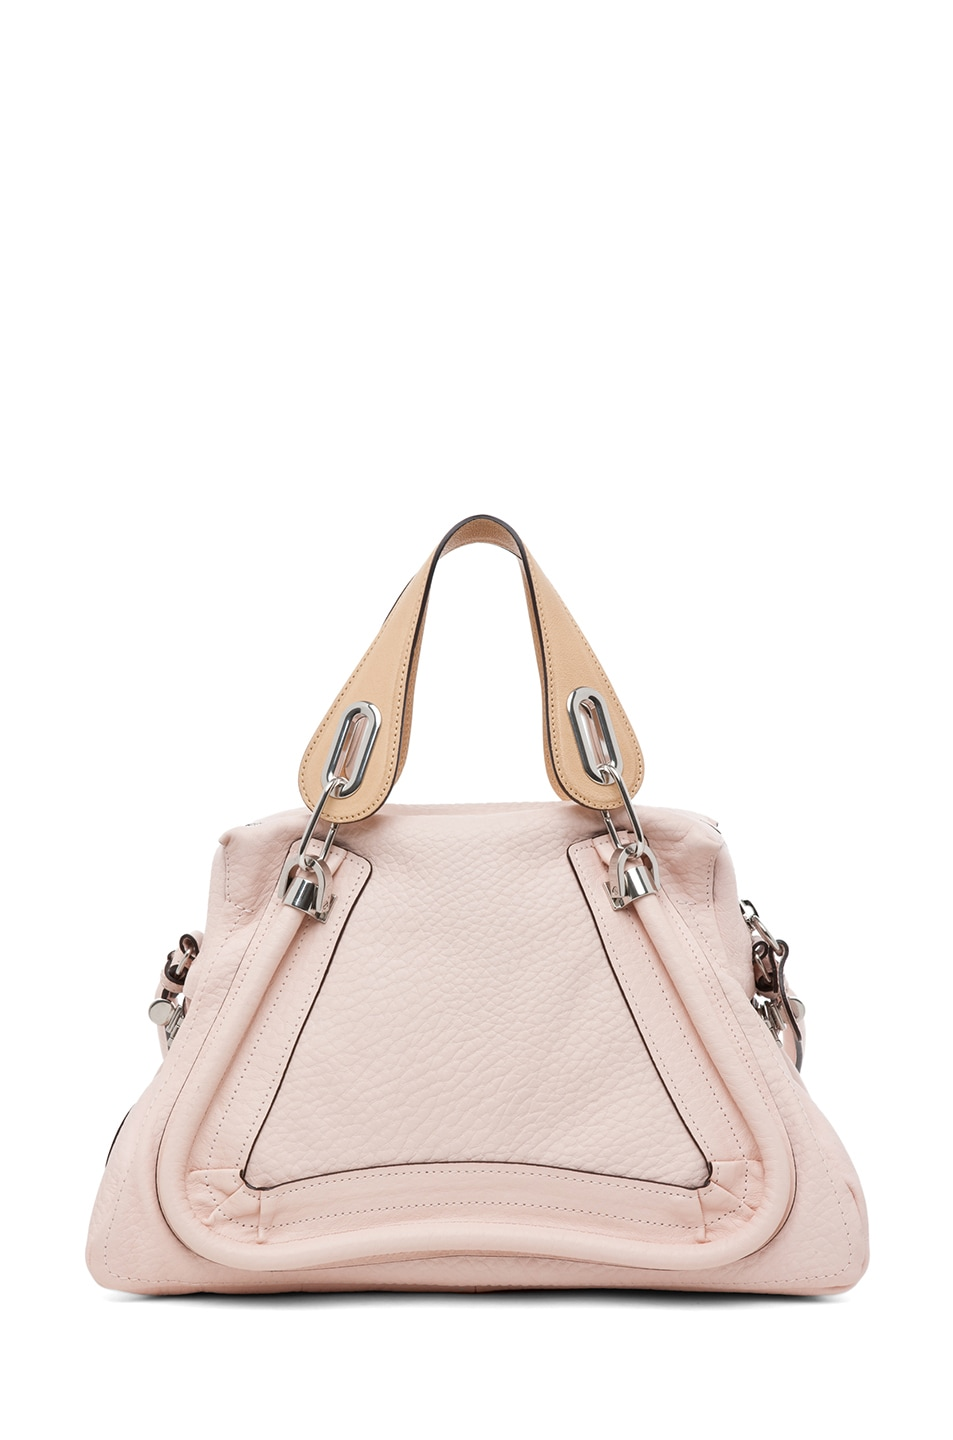 Image 2 of Chloe Paraty Medium Shoulder Bag in Bliss Pink